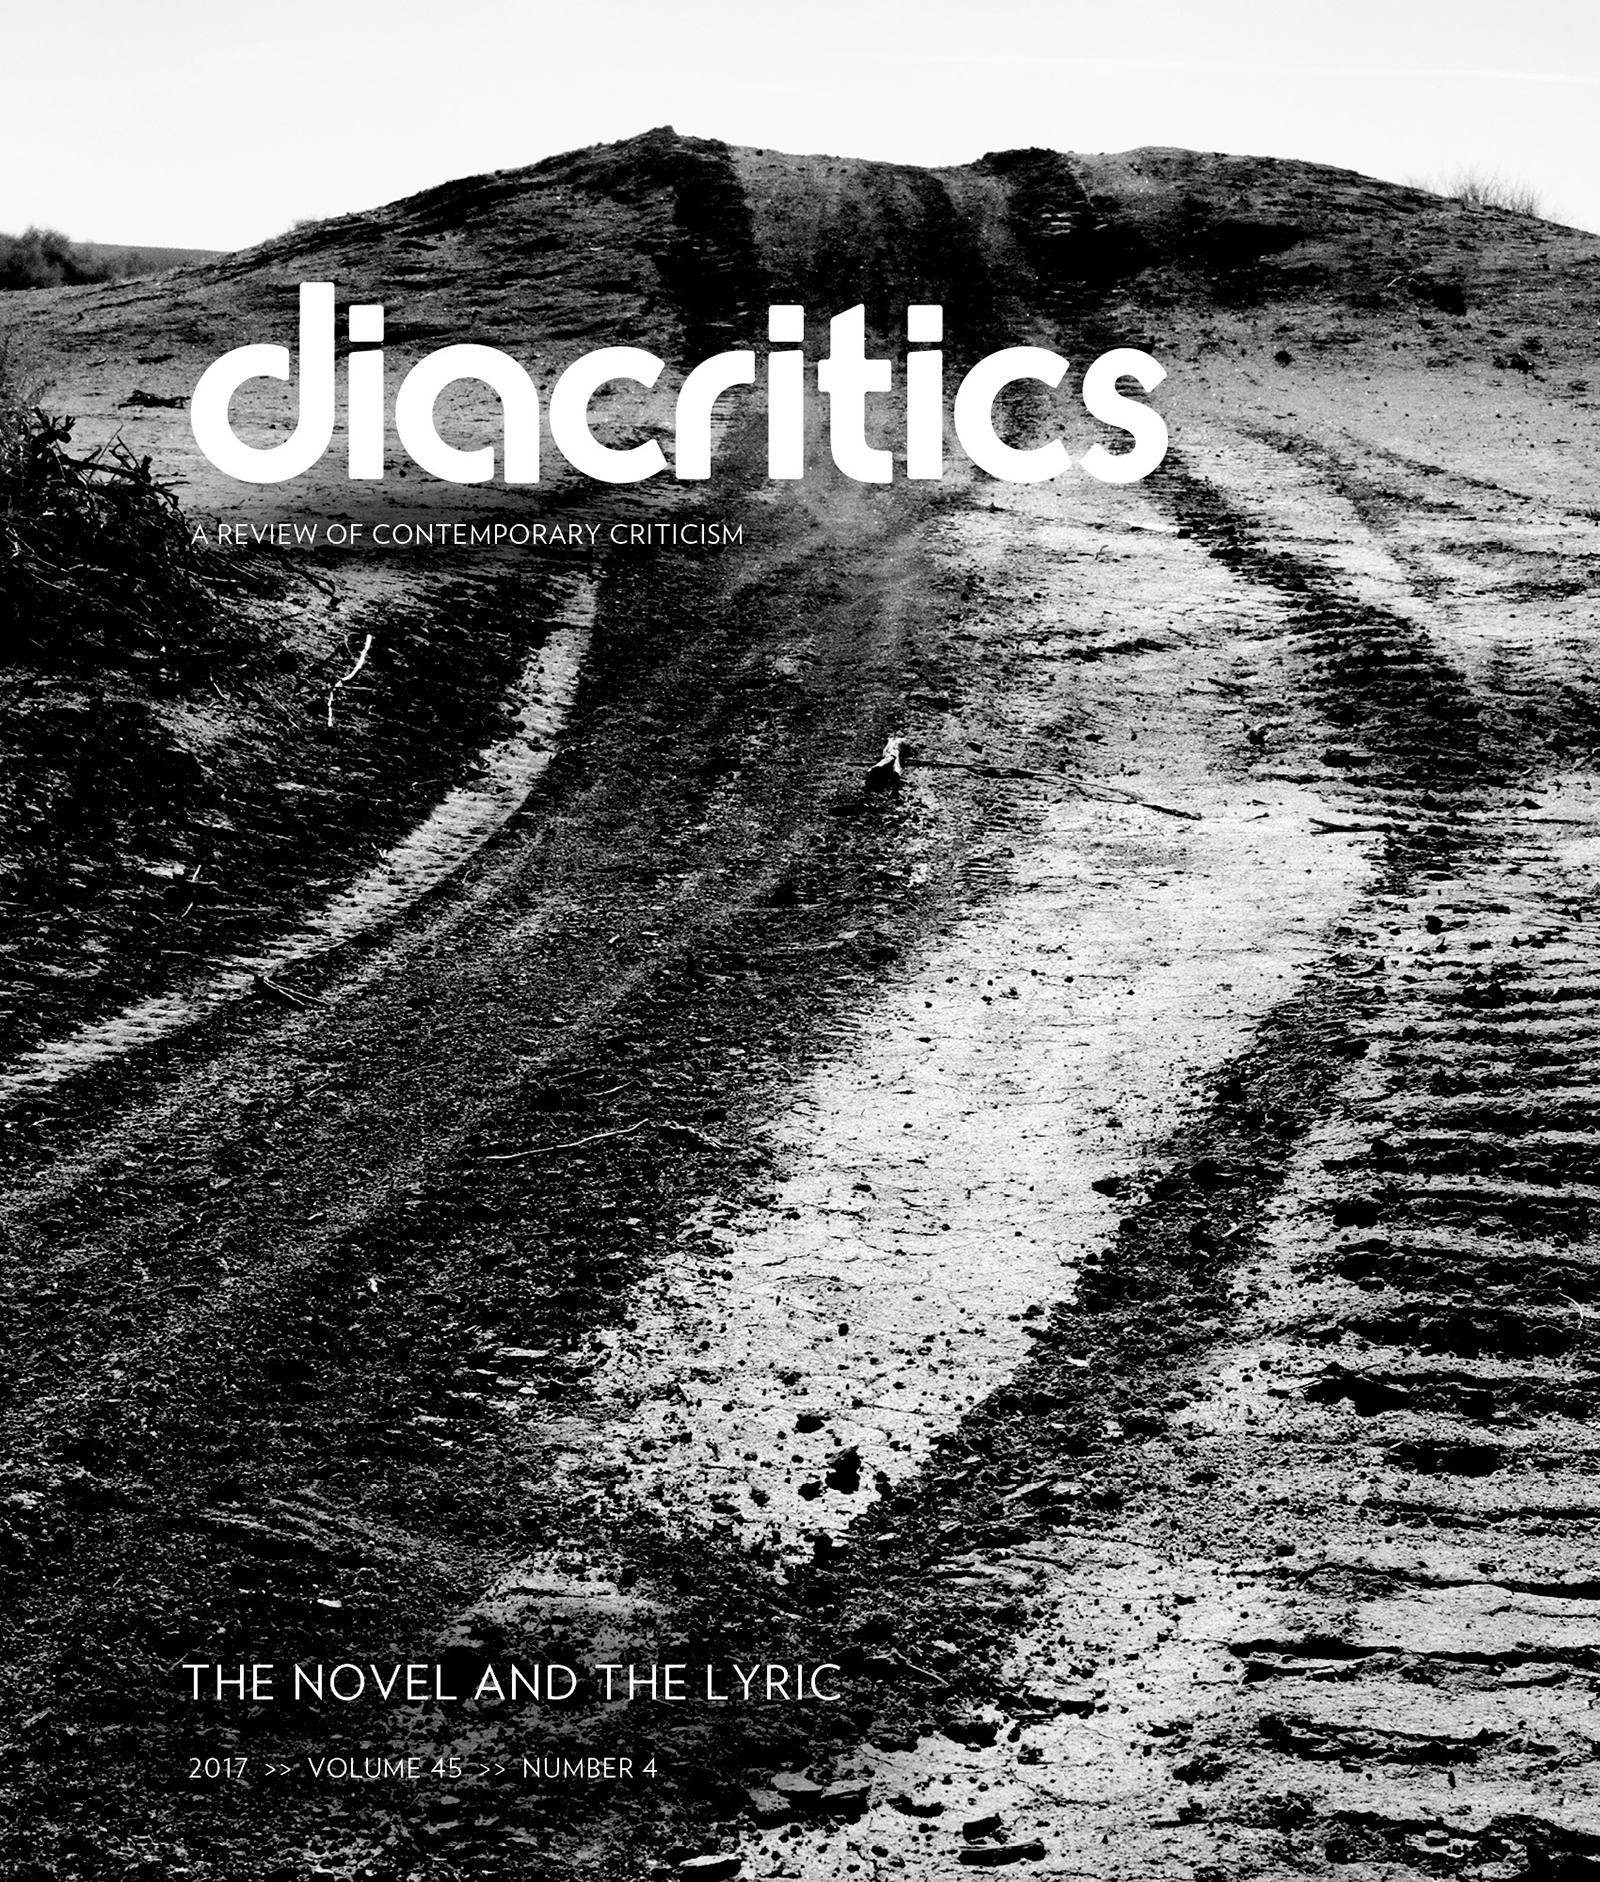 DIACRITICS VOLUME 45 NUMBER 4 2017